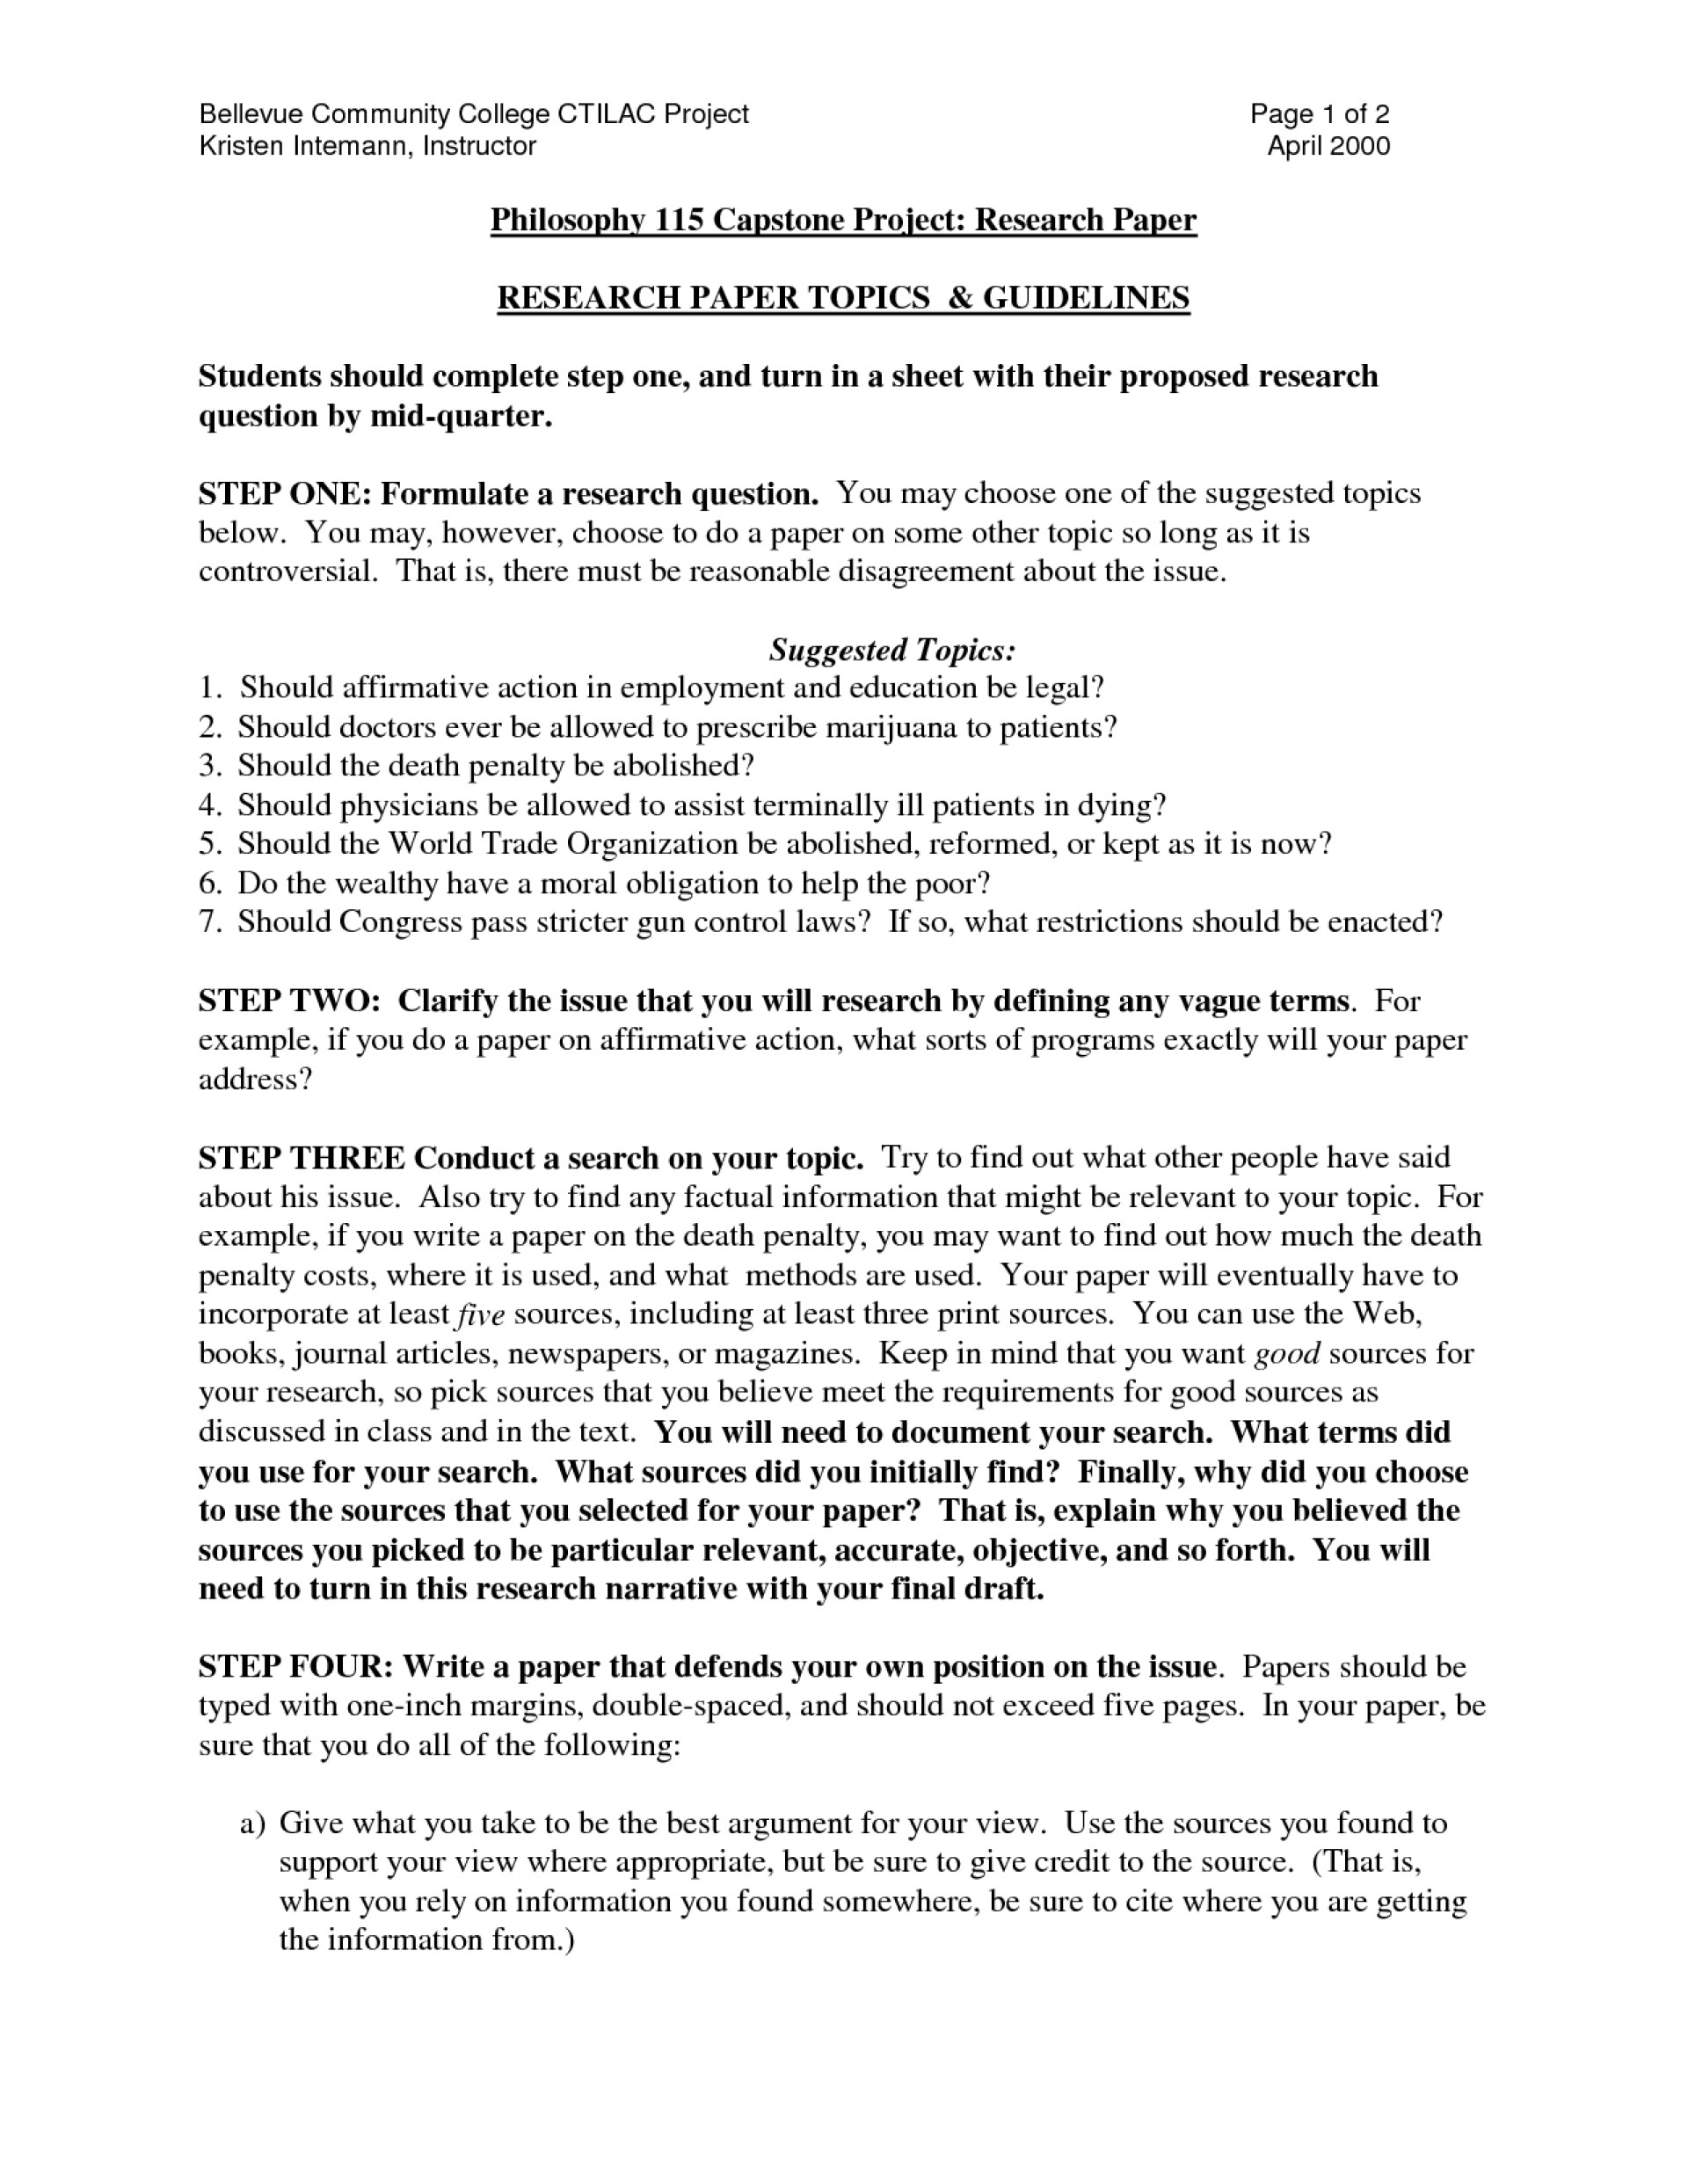 Reconstruction After The Civil War Essay  Marcus Garvey Essay also Buy College Essays  Introduction Samples For Research Papers Paper College  Education Conclusion Essay